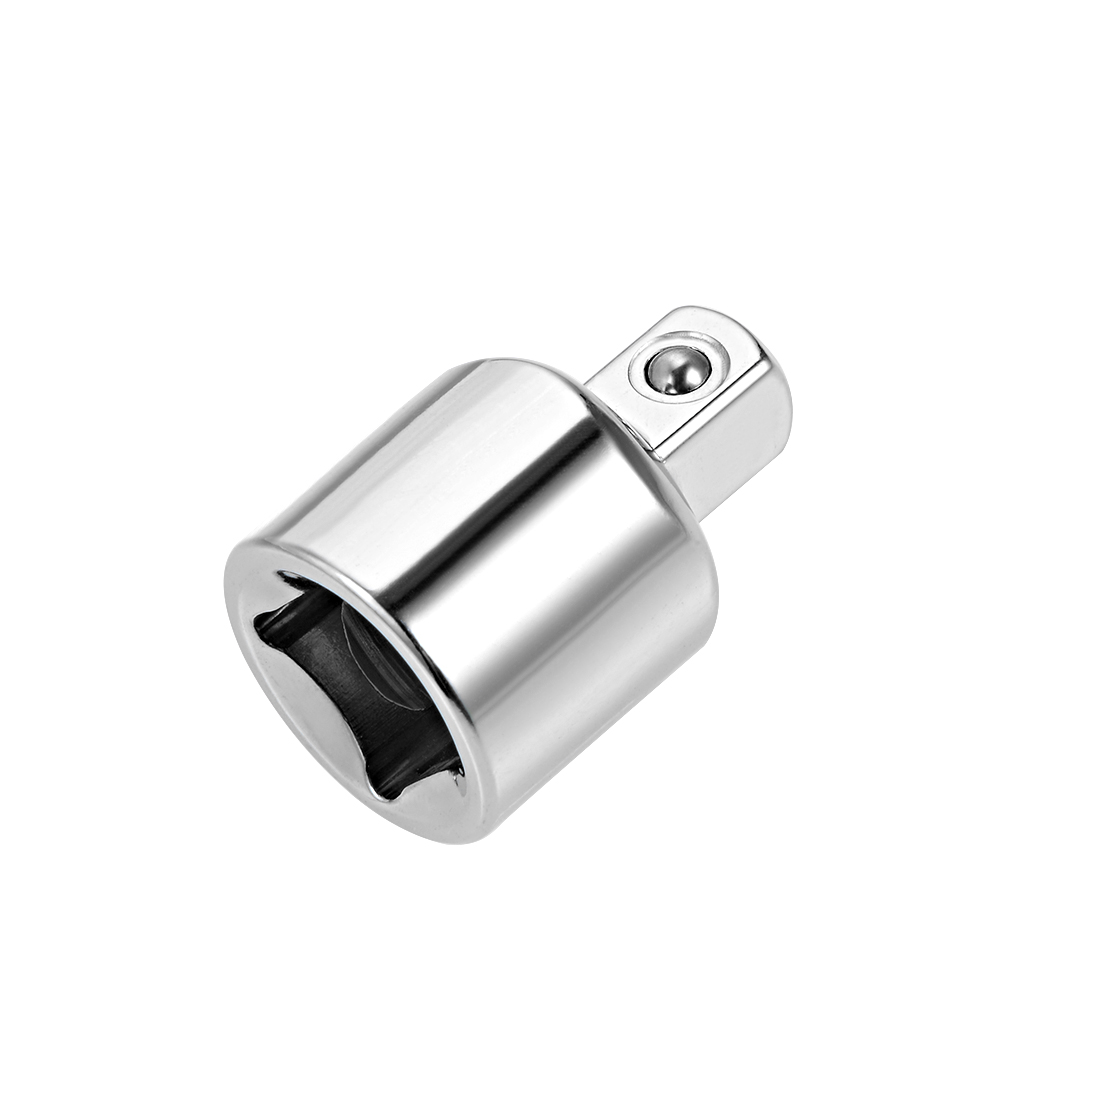 Socket Adapter 3/8-Inch F to 1/4-Inch M for Ratchet Wrenches Cr-V Steel